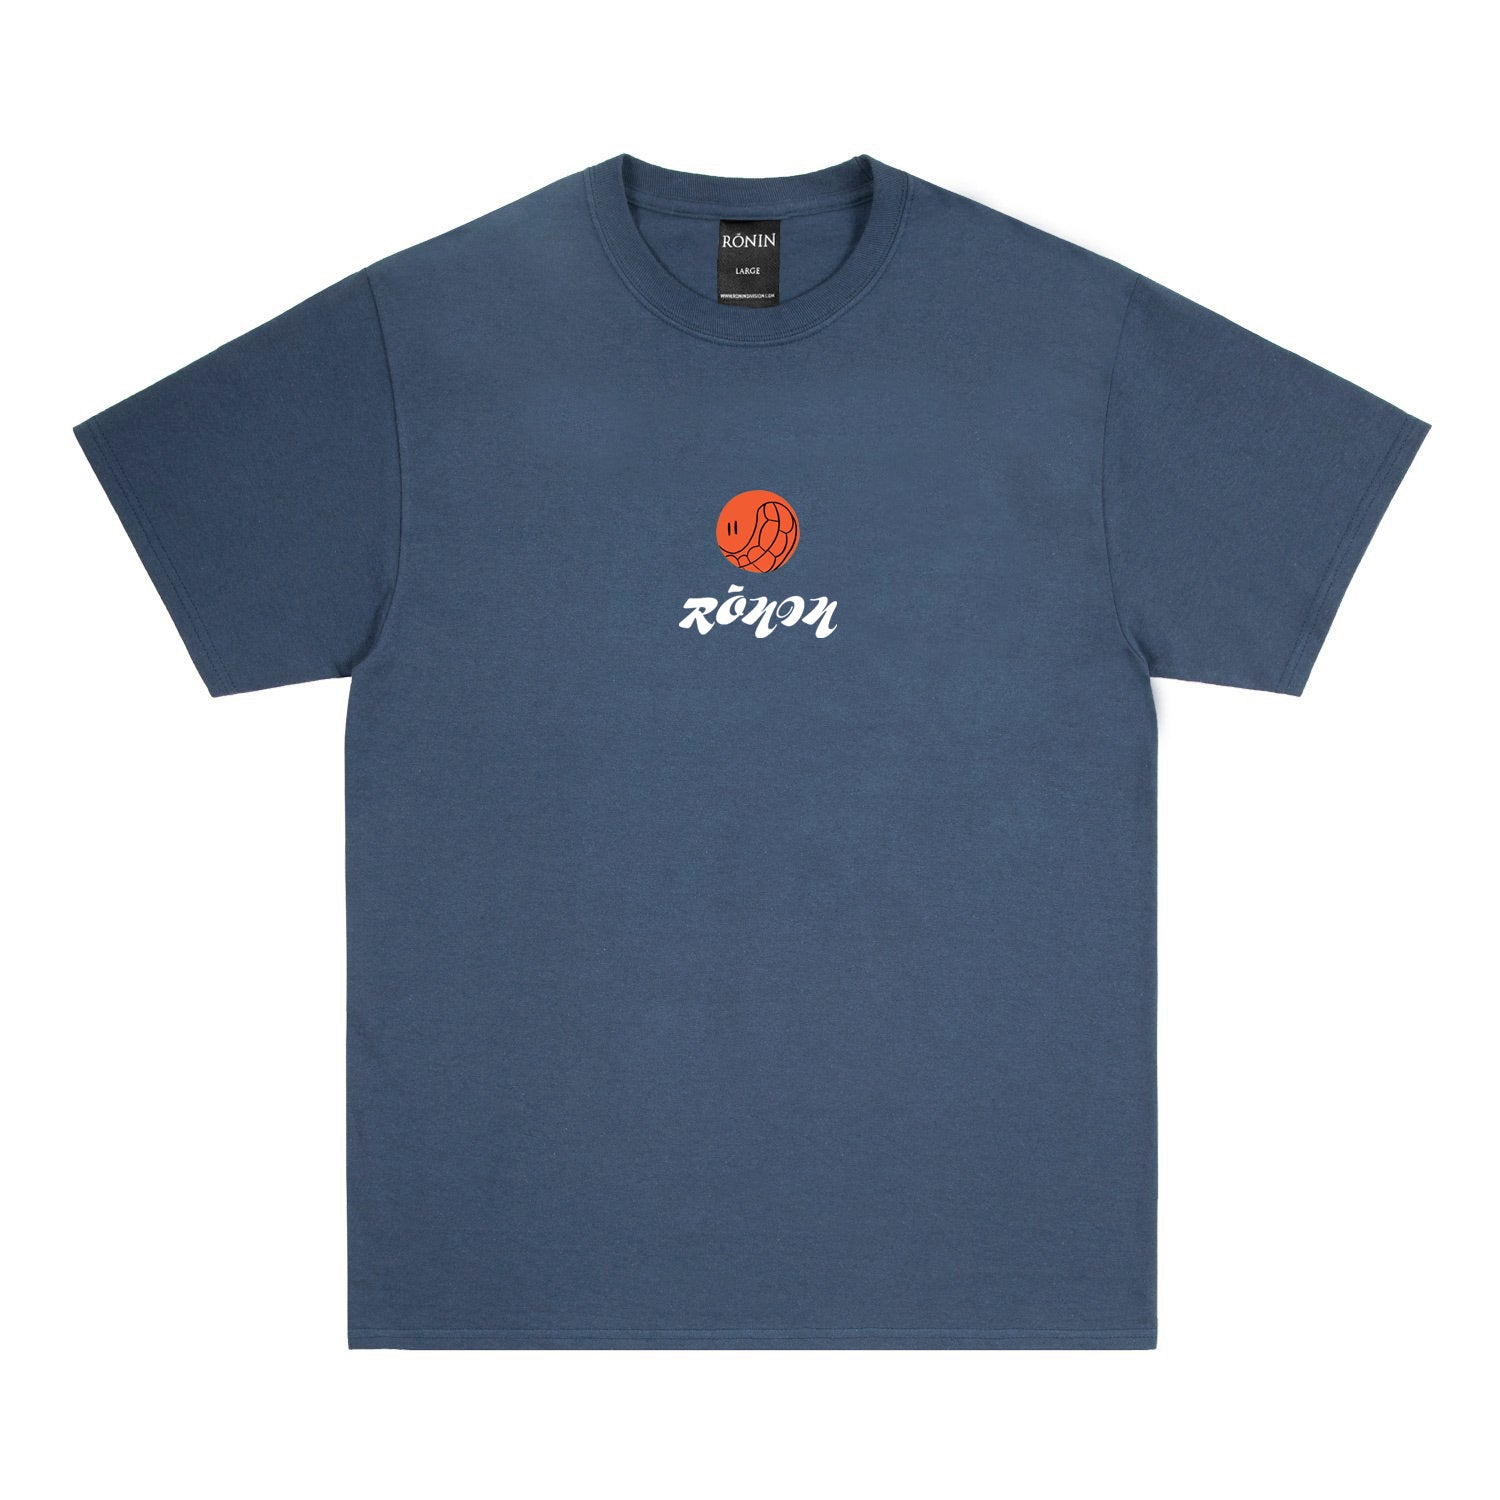 Memories Tee - Denim